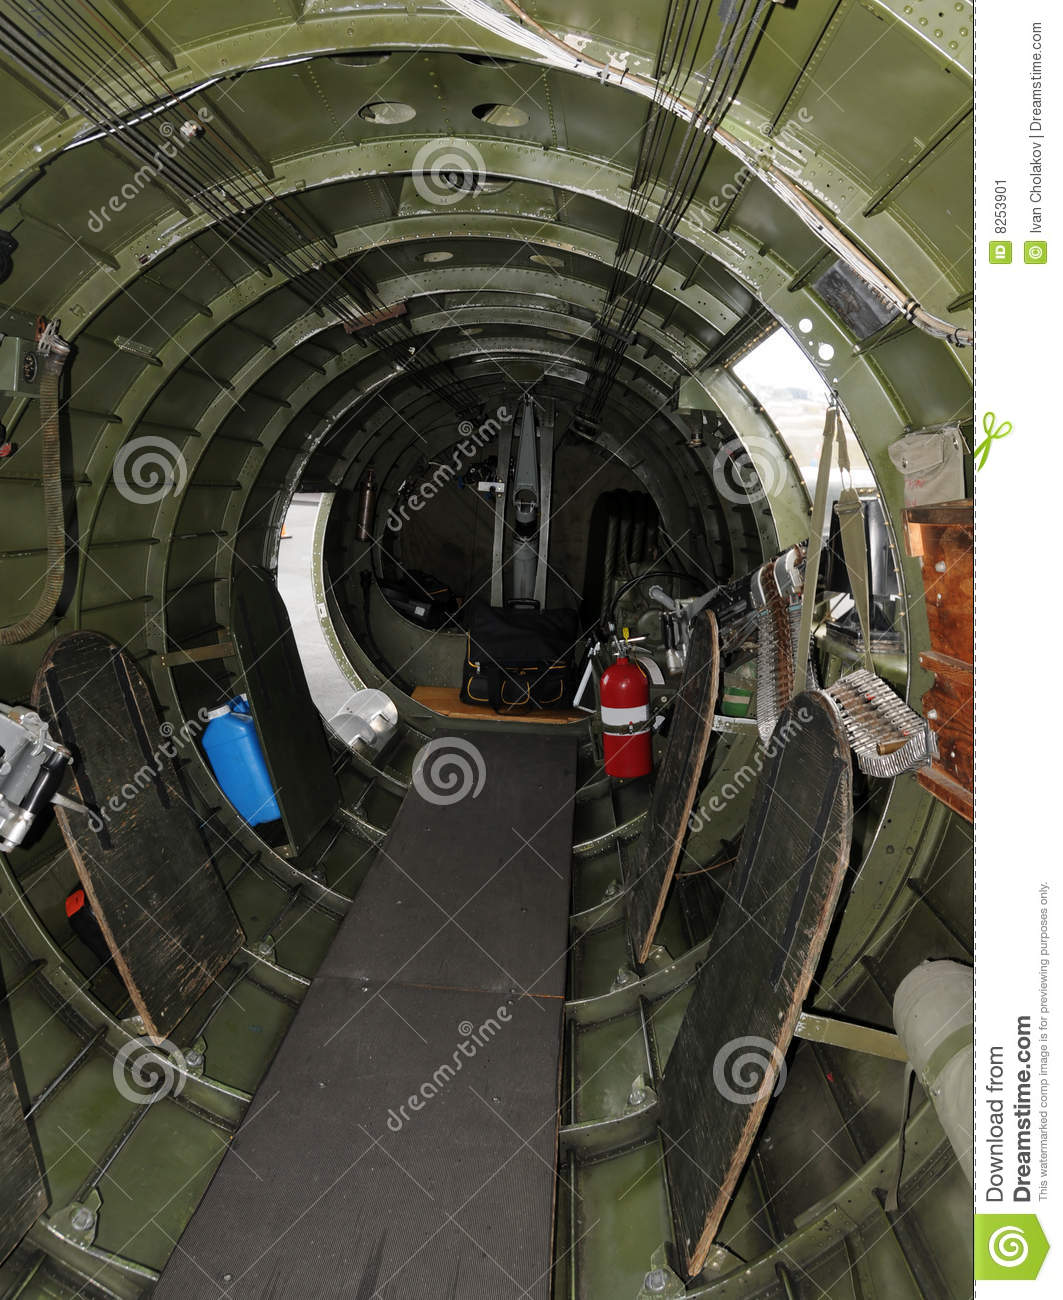 More similar stock images of ` Bomber interior `